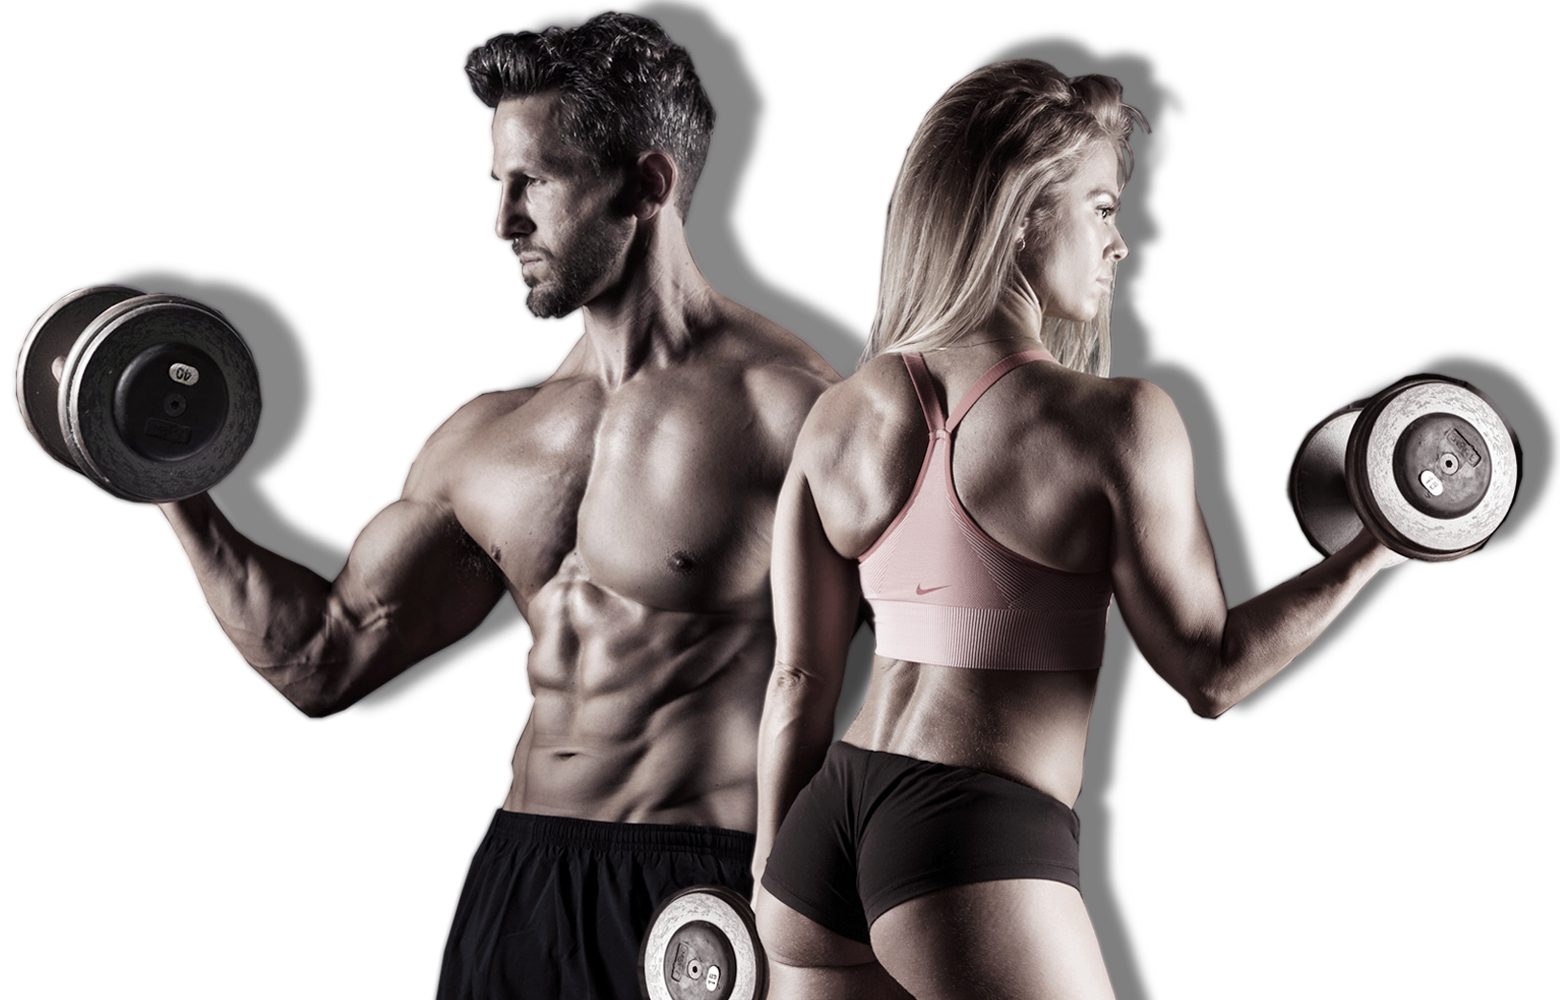 Certified personal trainers, Larry Cook and Brittney Bell, incorporate a balance of three essential elements that, not only effectively shape your body, but improve your health and overall quality of life, too.